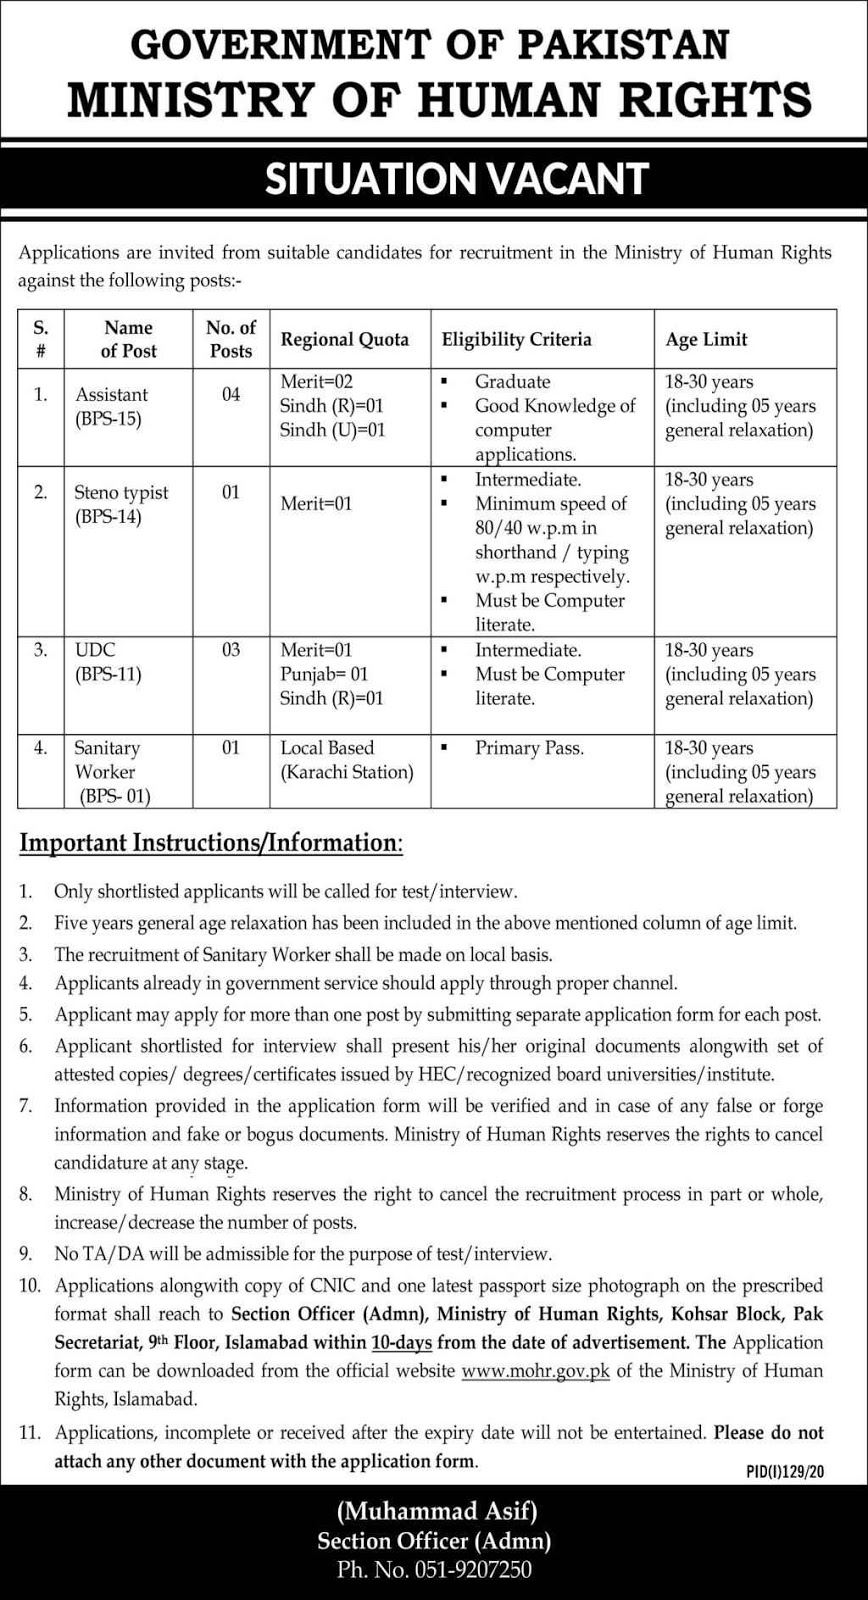 Ministry of Human Rights MOHR Jobs 2020 for Assistant, Steno Typist, Upper Division Clerk UDC & more